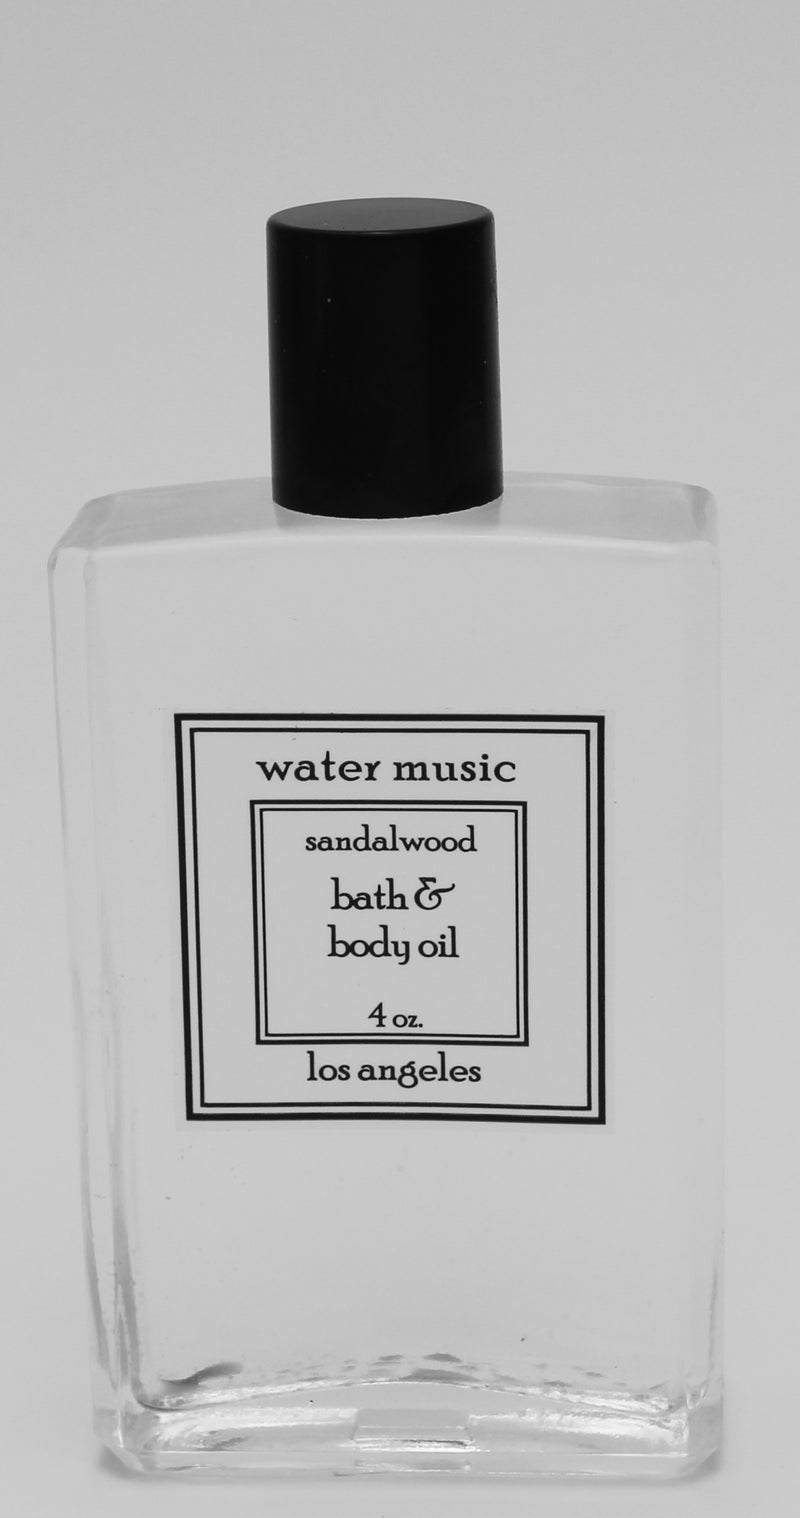 bath & body oil